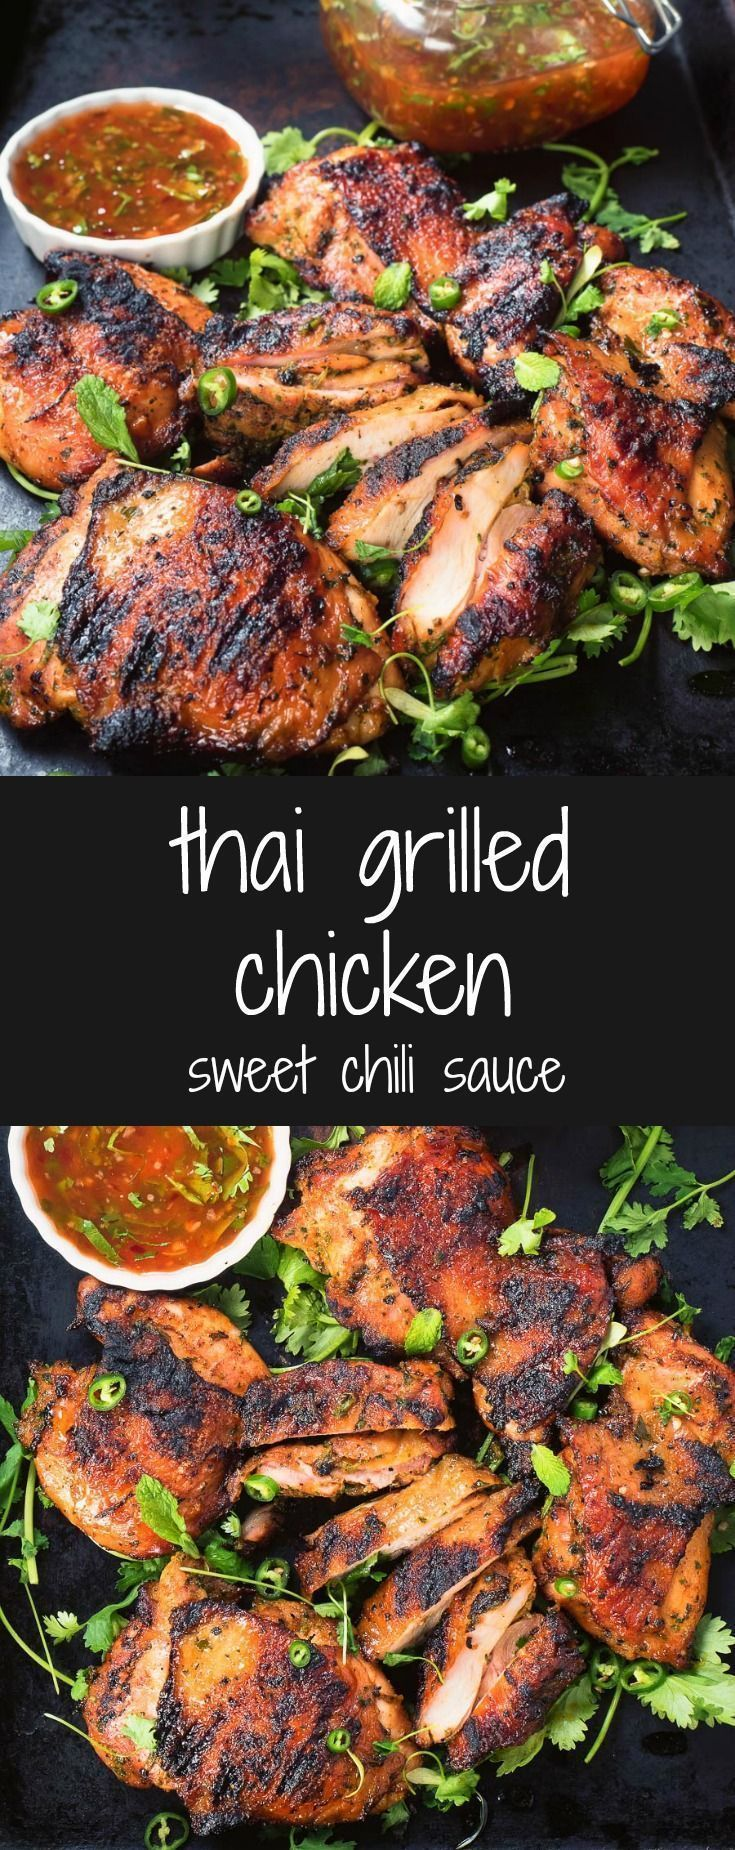 Thai grilled chicken with sweet chili sauce is a delicious way to mix up your summer grilling. #chickengrill #Grillingtips